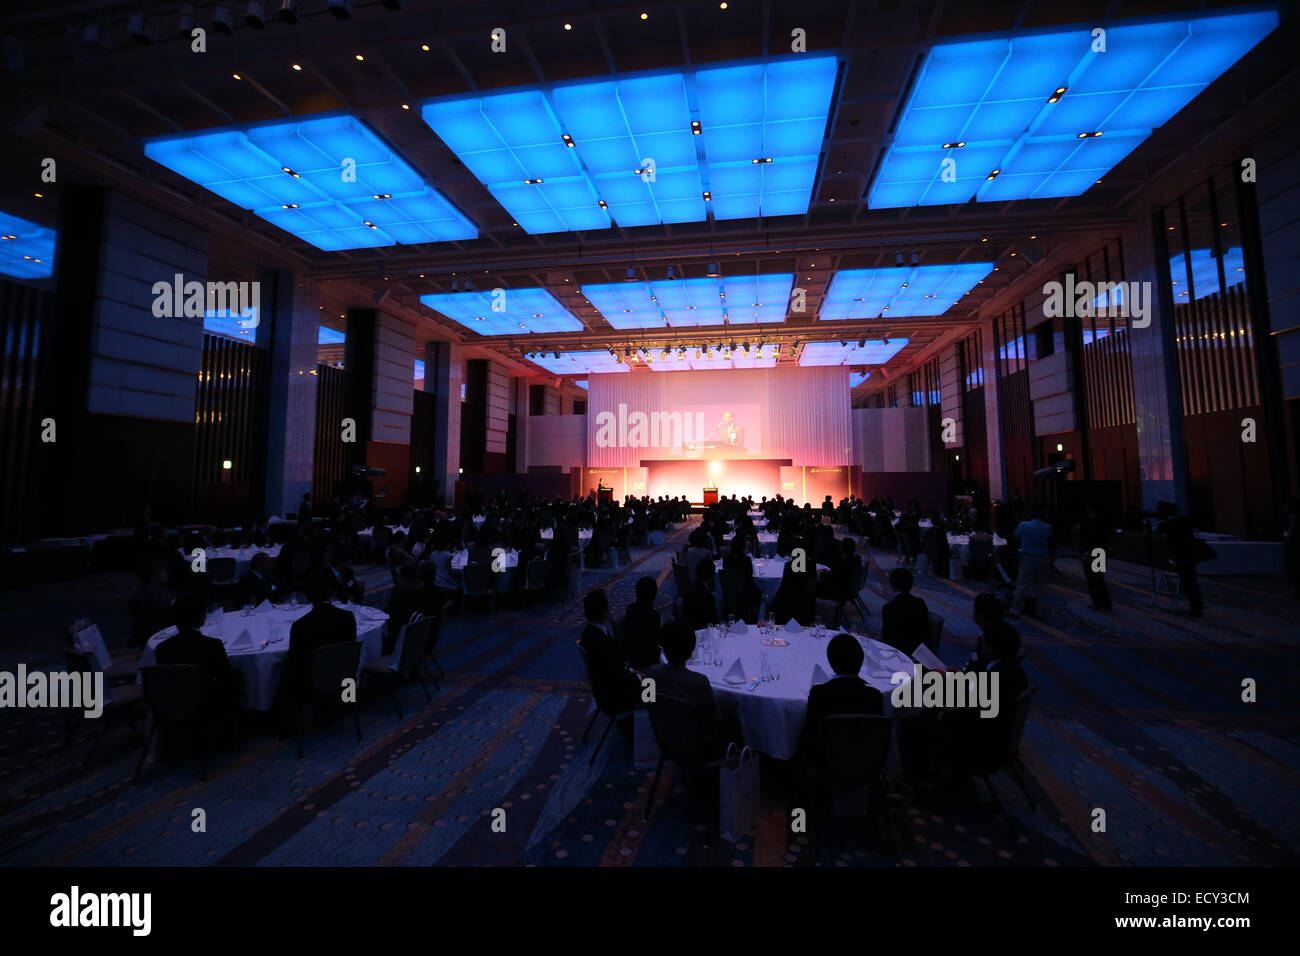 General View, DECEMBER 22, 2014 - Athletic :  JAAF Athletic Award 2014 is held at the prince park tower tokyo, Tokyo, - Stock Image